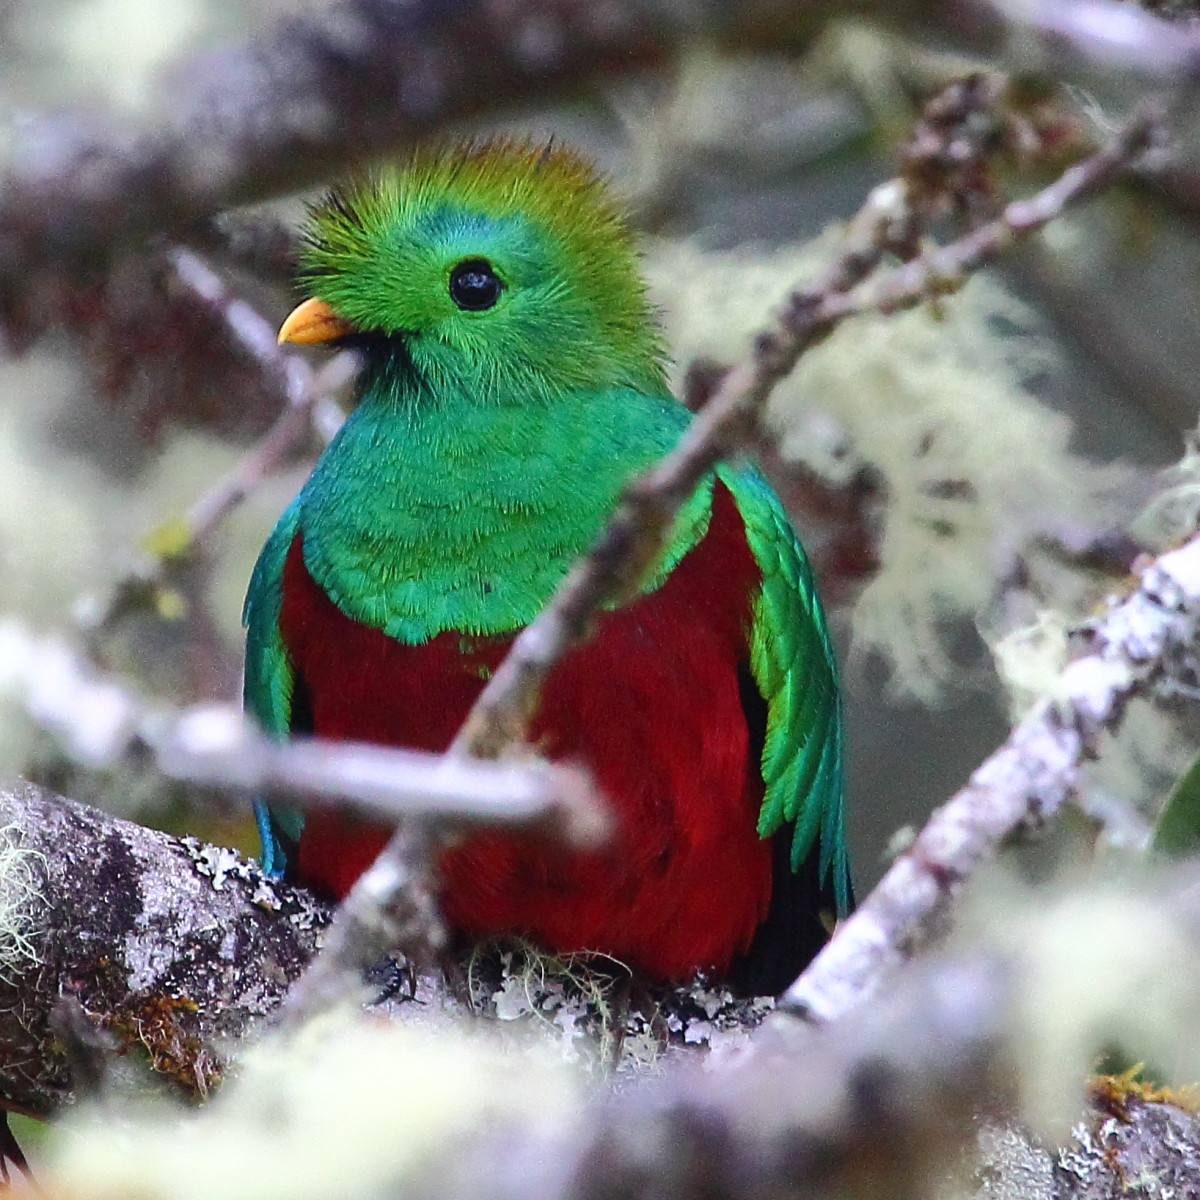 Quetzals display beautiful reds and greens in their iridescent plumage.